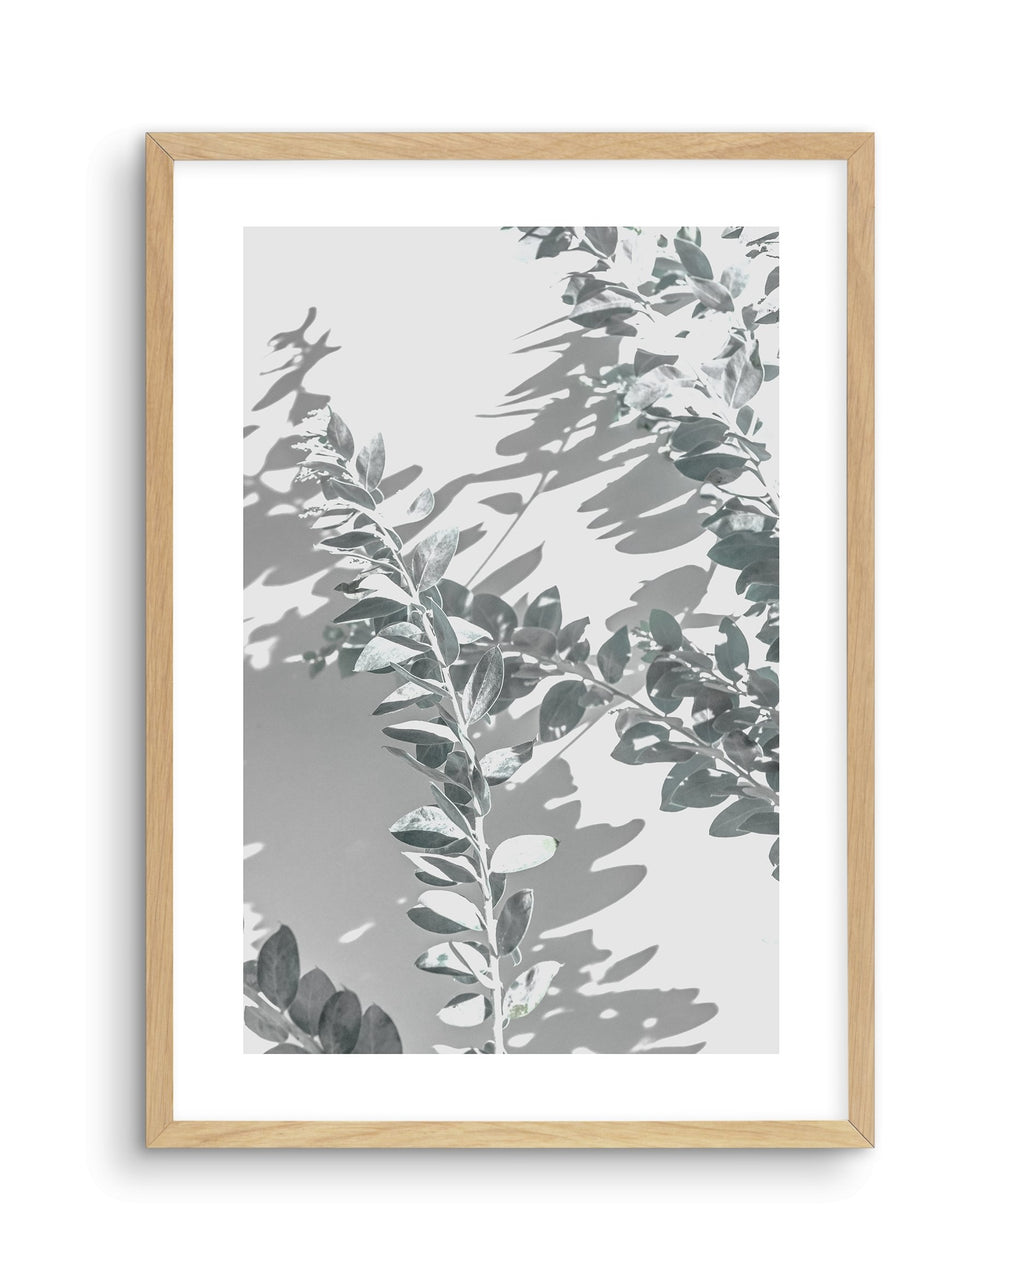 Abstract Leaves No 2 - Olive et Oriel | Shop Art Prints & Posters Online